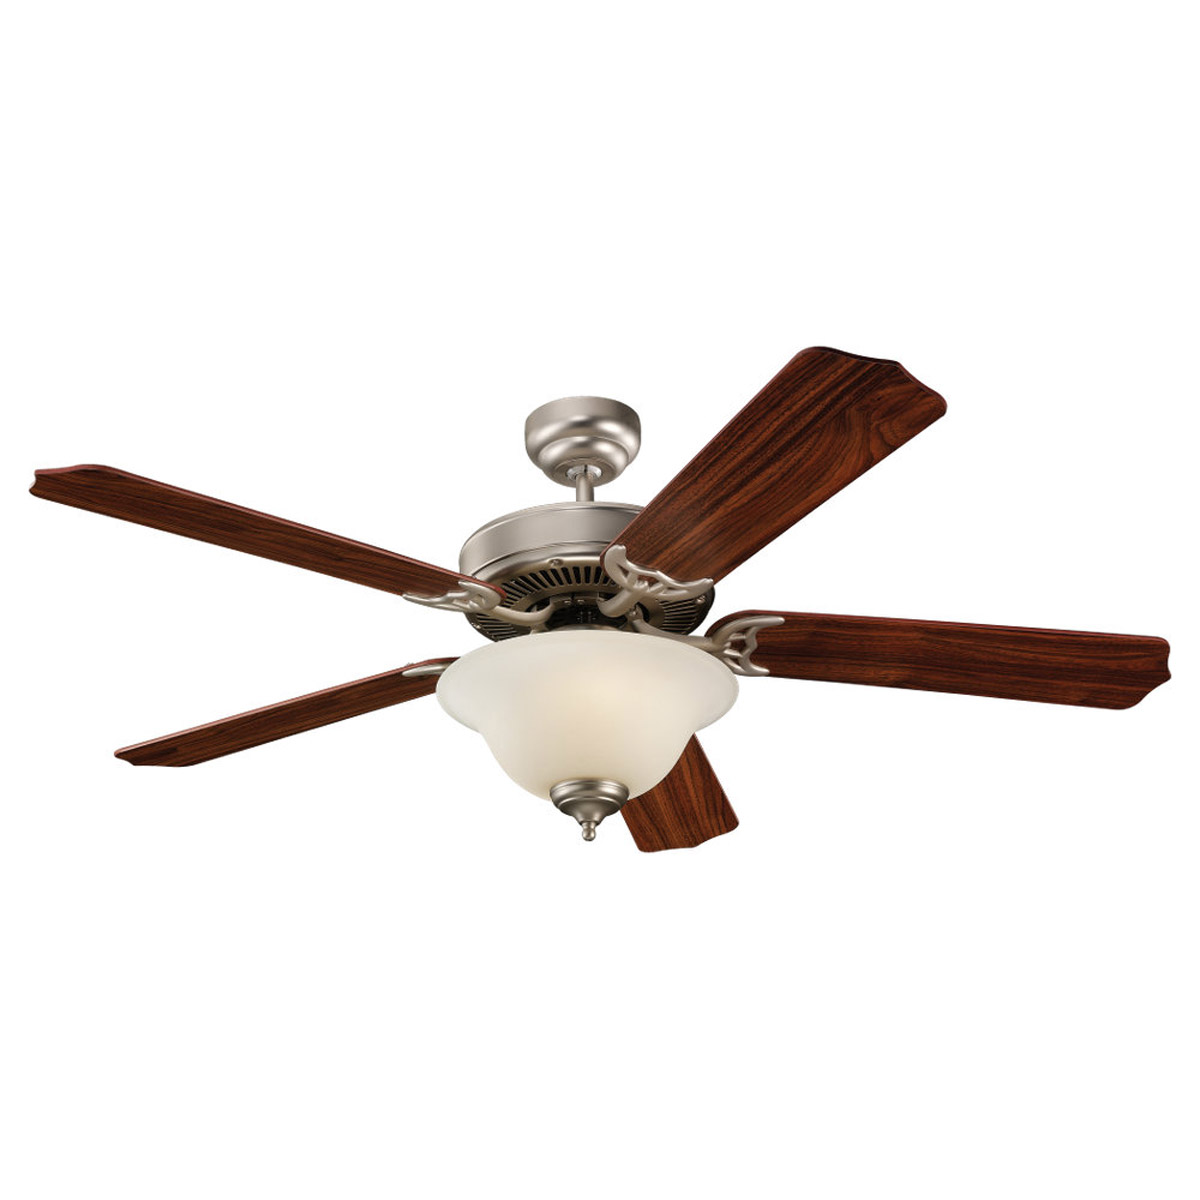 Sea Gull Lighting Quality Max Plus 2 Light Fluorescent Ceiling Fan in Brushed Pewter 15030BLE-892